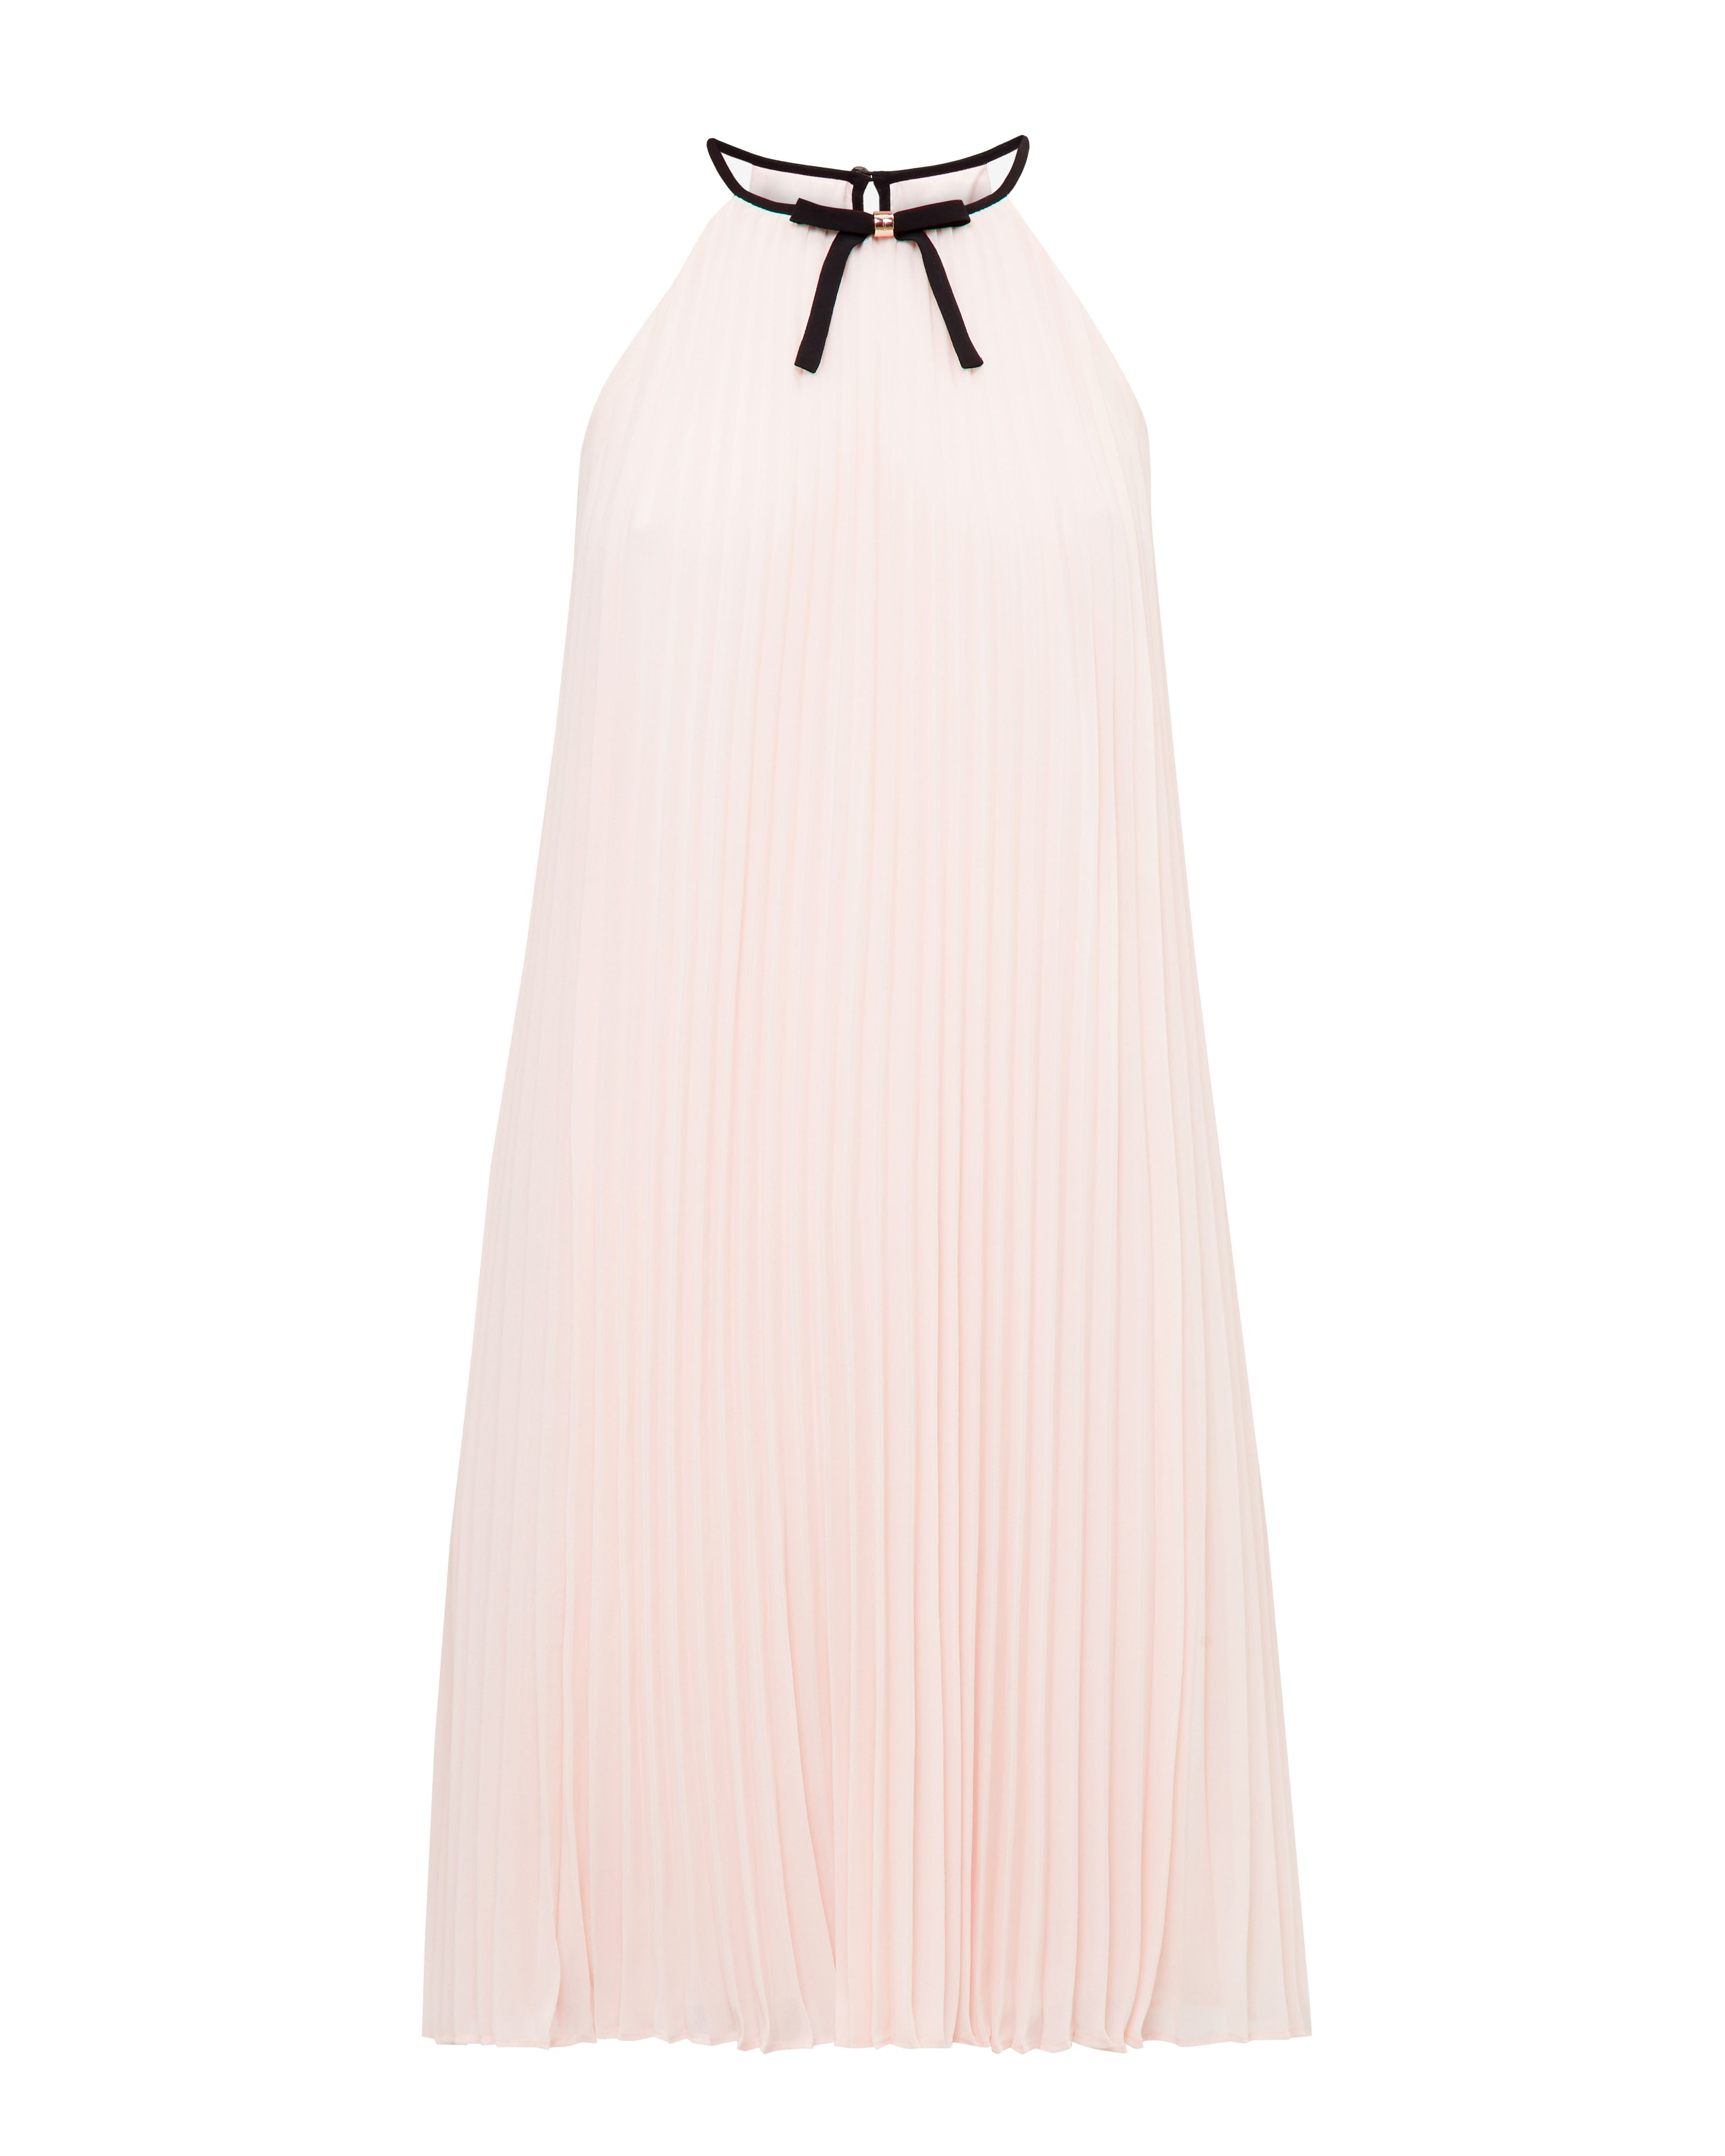 Ted Baker Emelayemelay Bow Detail Pleated A Line Dress, Pastel Pink